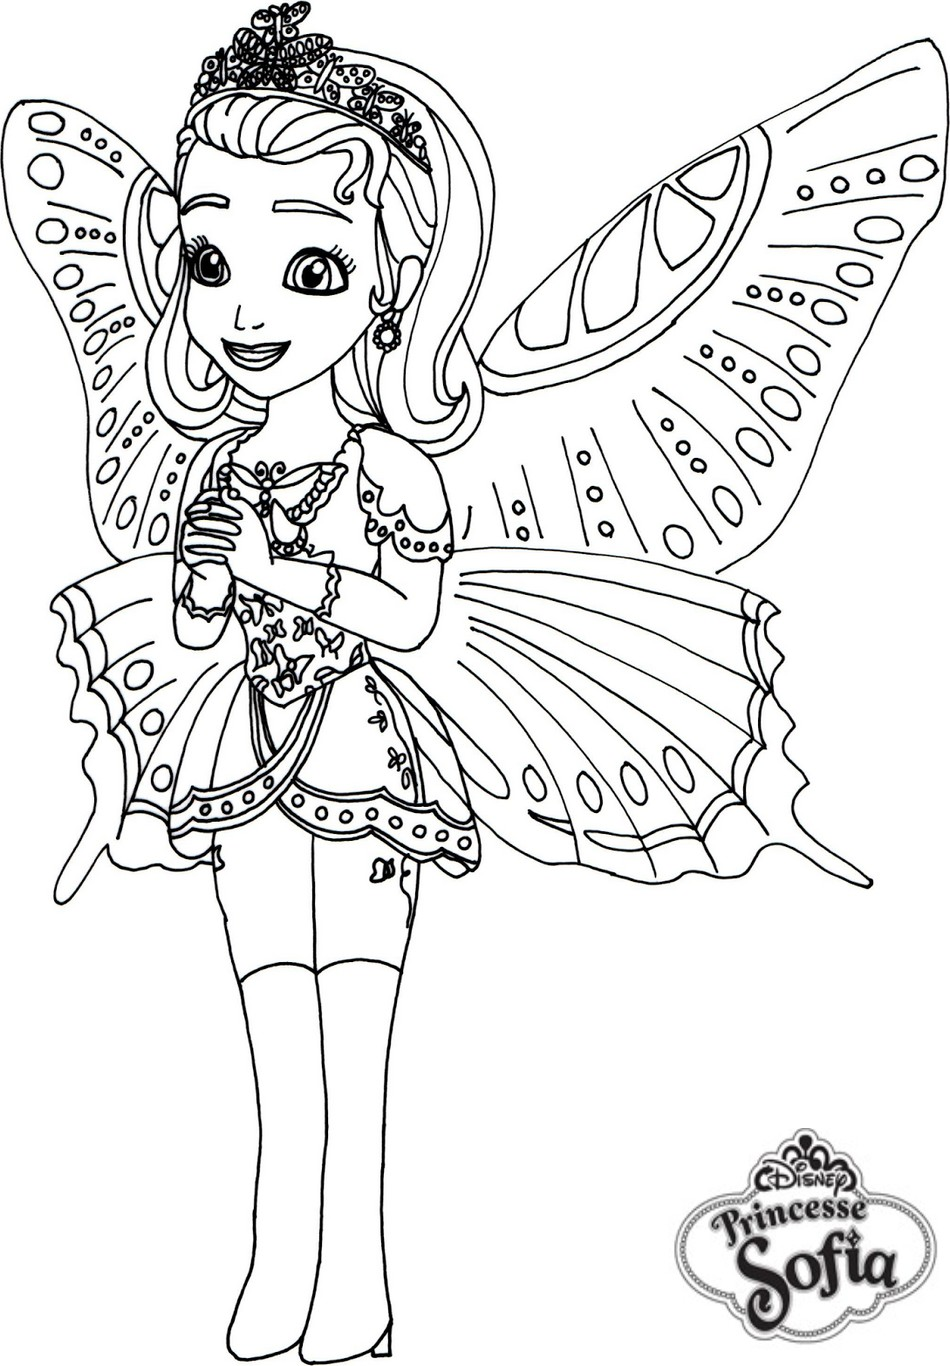 coloriage princesse sofia papillon - Coloriages Princesse